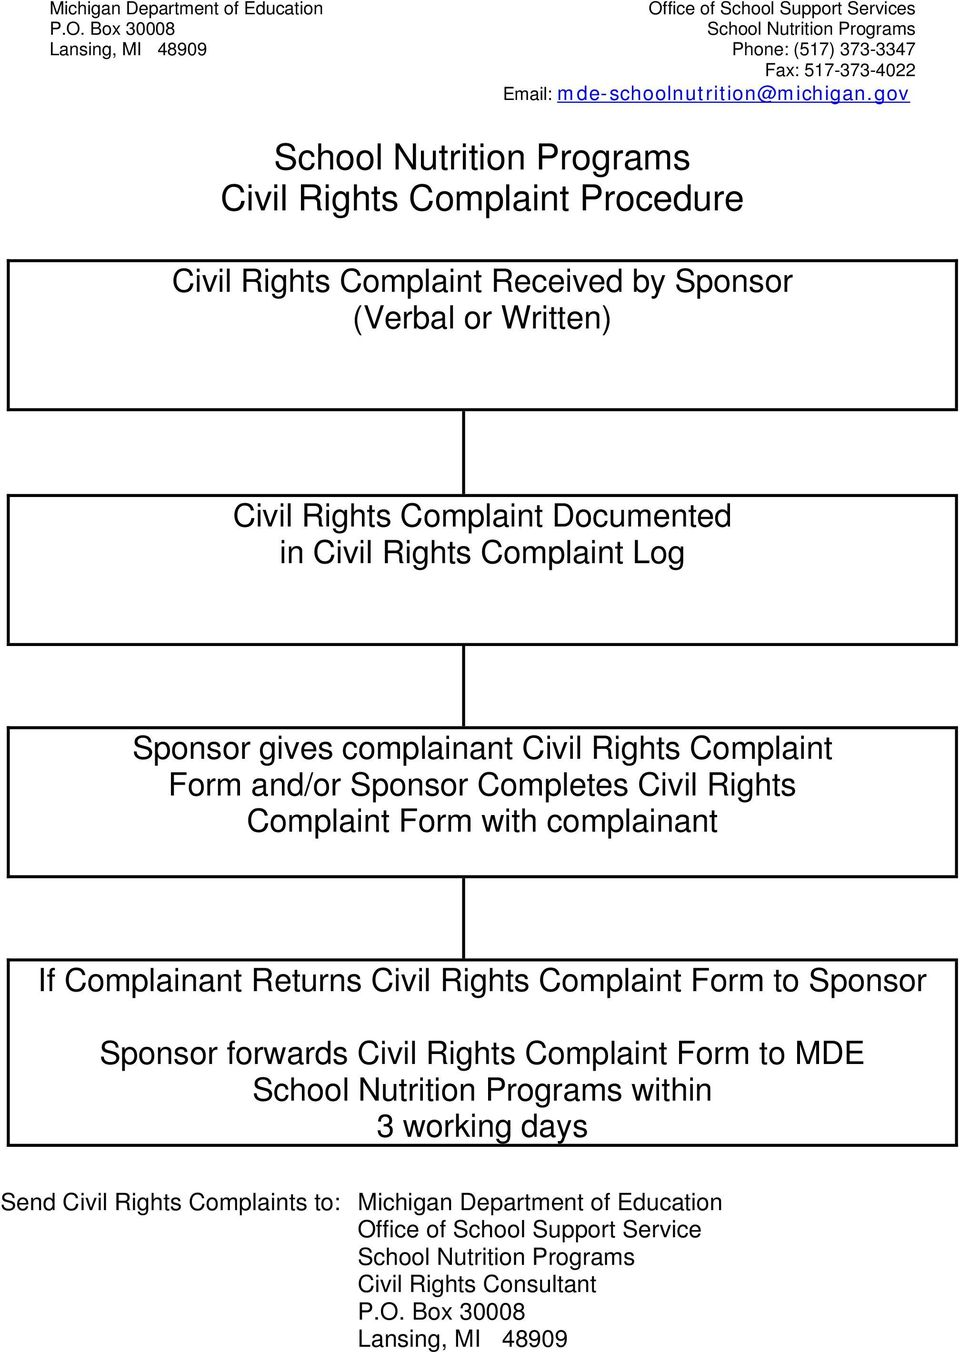 complainant Civil Rights Complaint Form and/or Sponsor Completes Civil Rights Complaint Form with complainant If Complainant Returns Civil Rights Complaint Form to Sponsor Sponsor